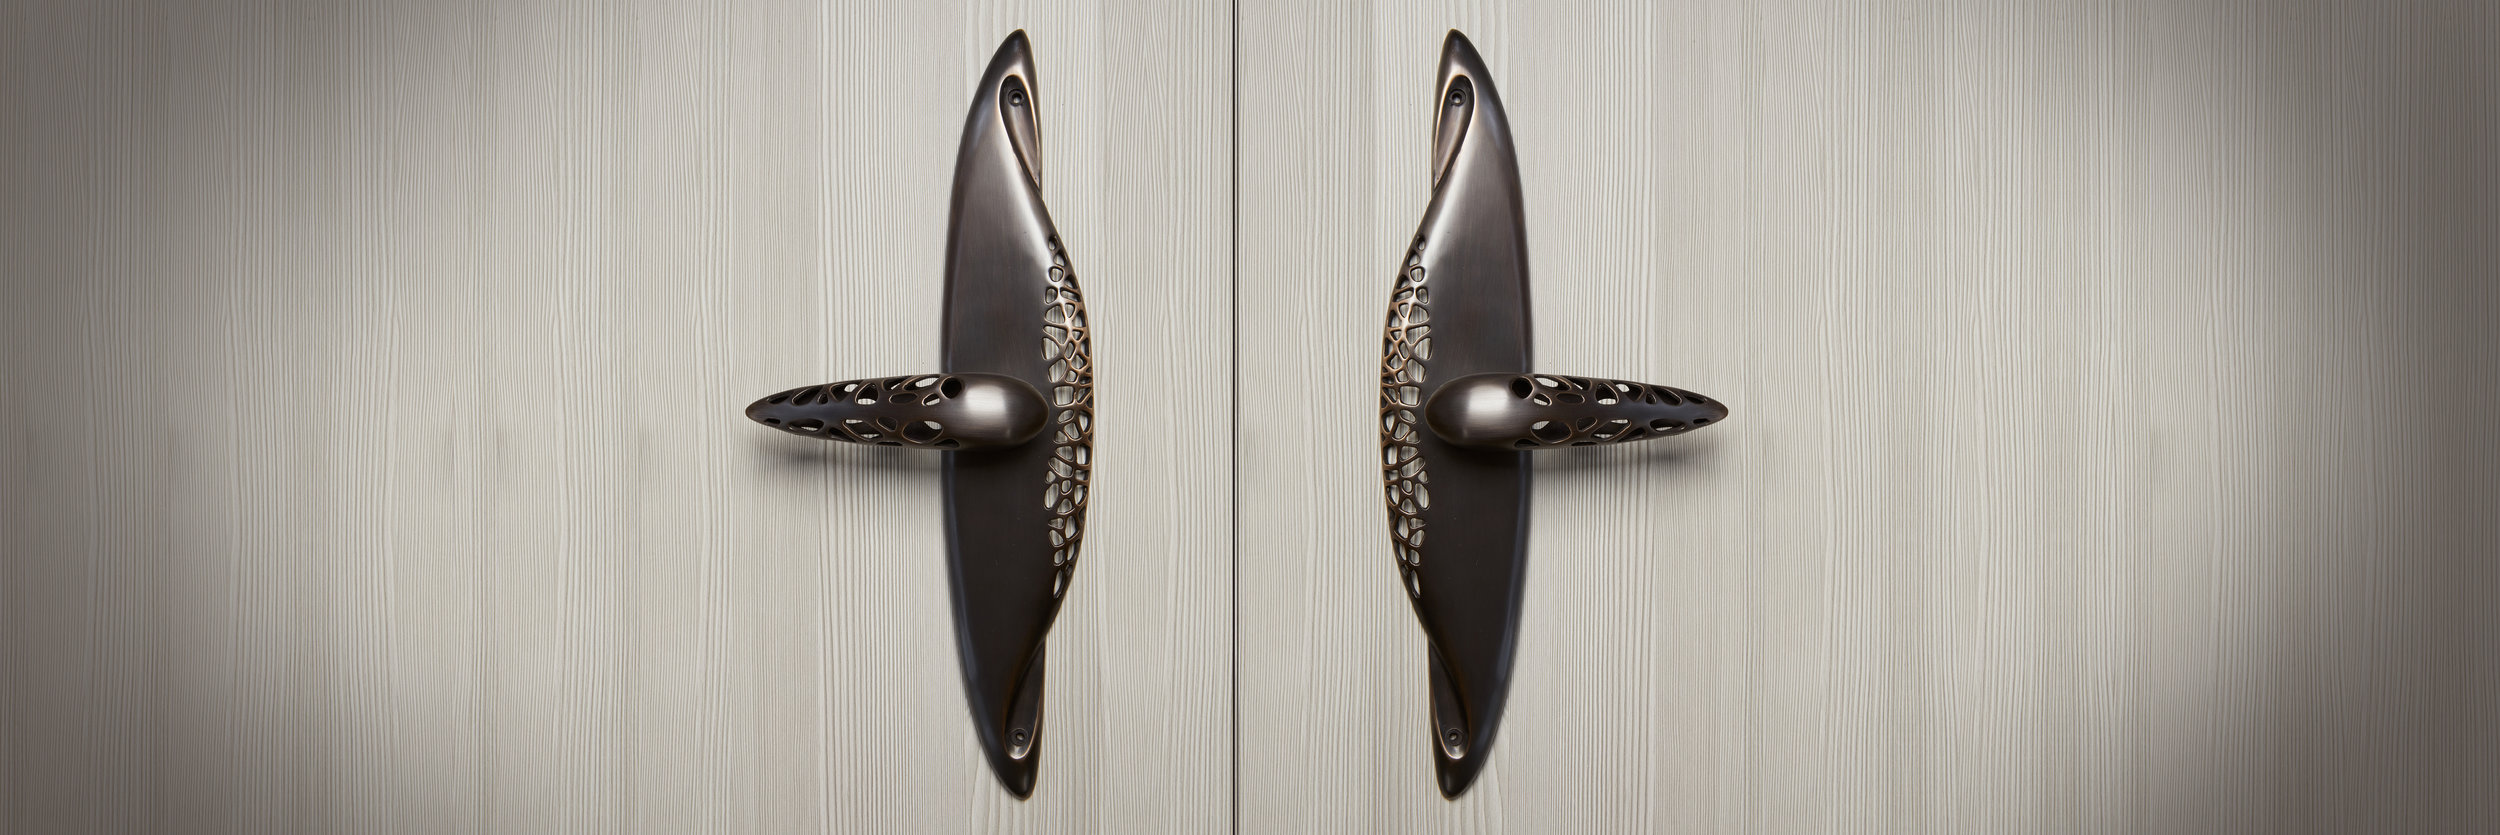 Martin Pierce Custom Door Handles Hardware Knobs And Cabinet Pulls